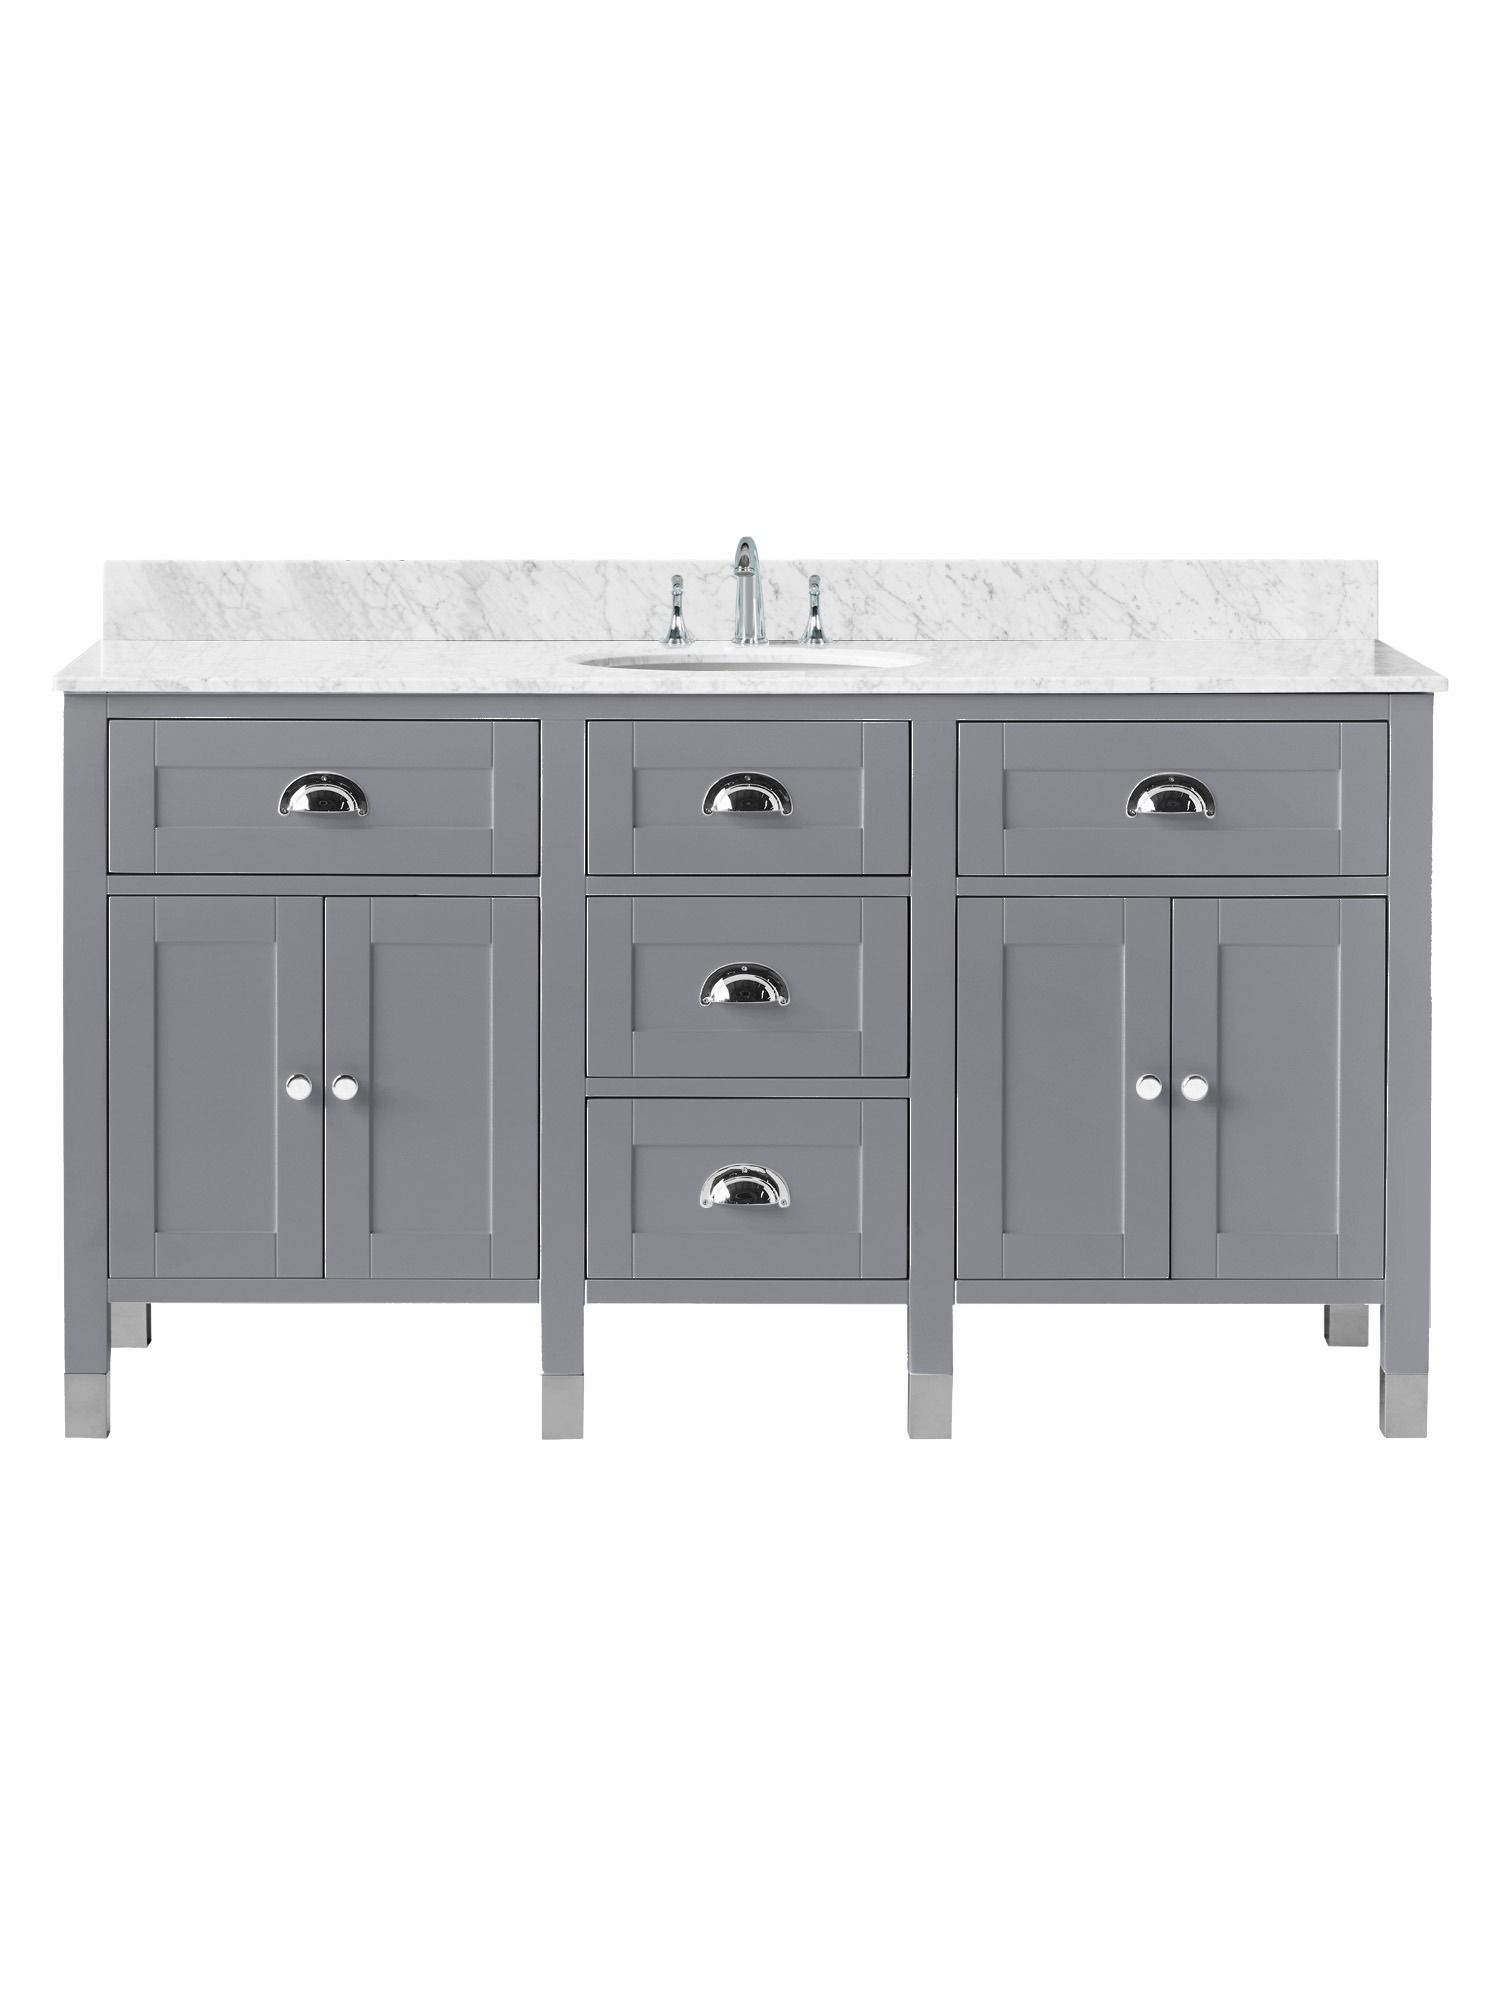 Freestanding Bathroom Vanity With A Sleek Design Our Aurora Is A